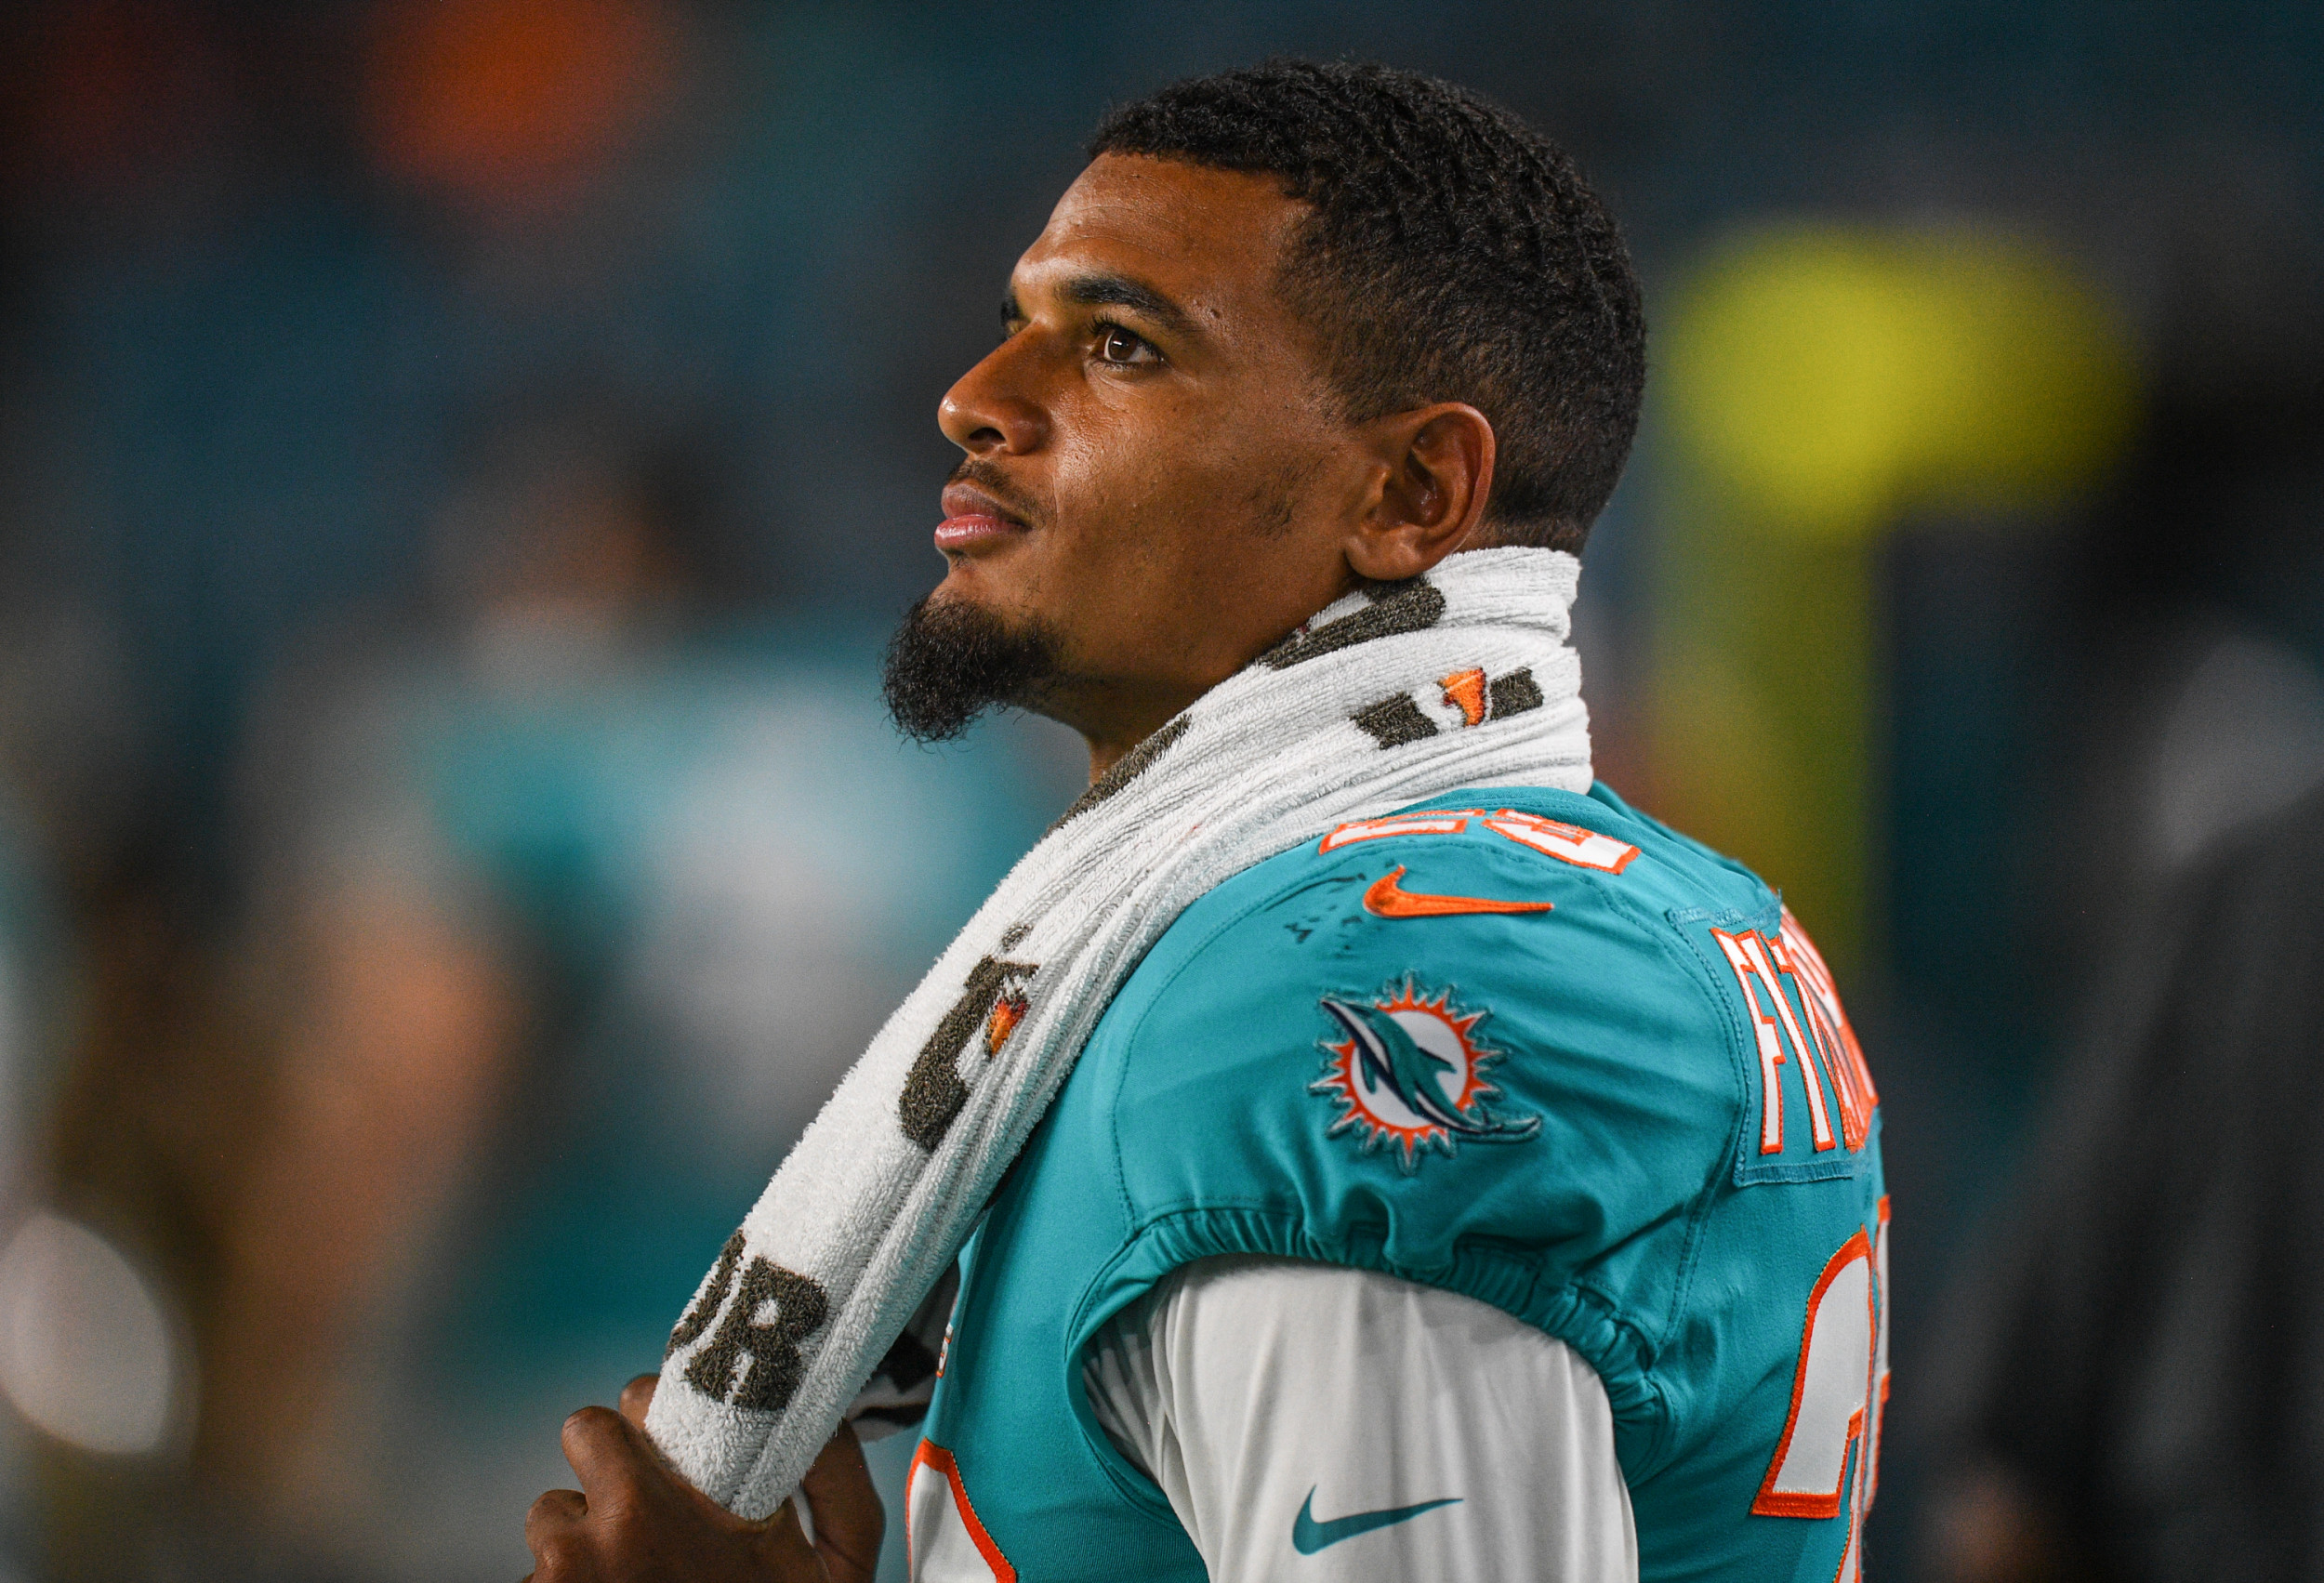 outlet store bfbf9 26e81 Minkah Fitzpatrick: Will Miami Dolphins Trade First-round Pick?